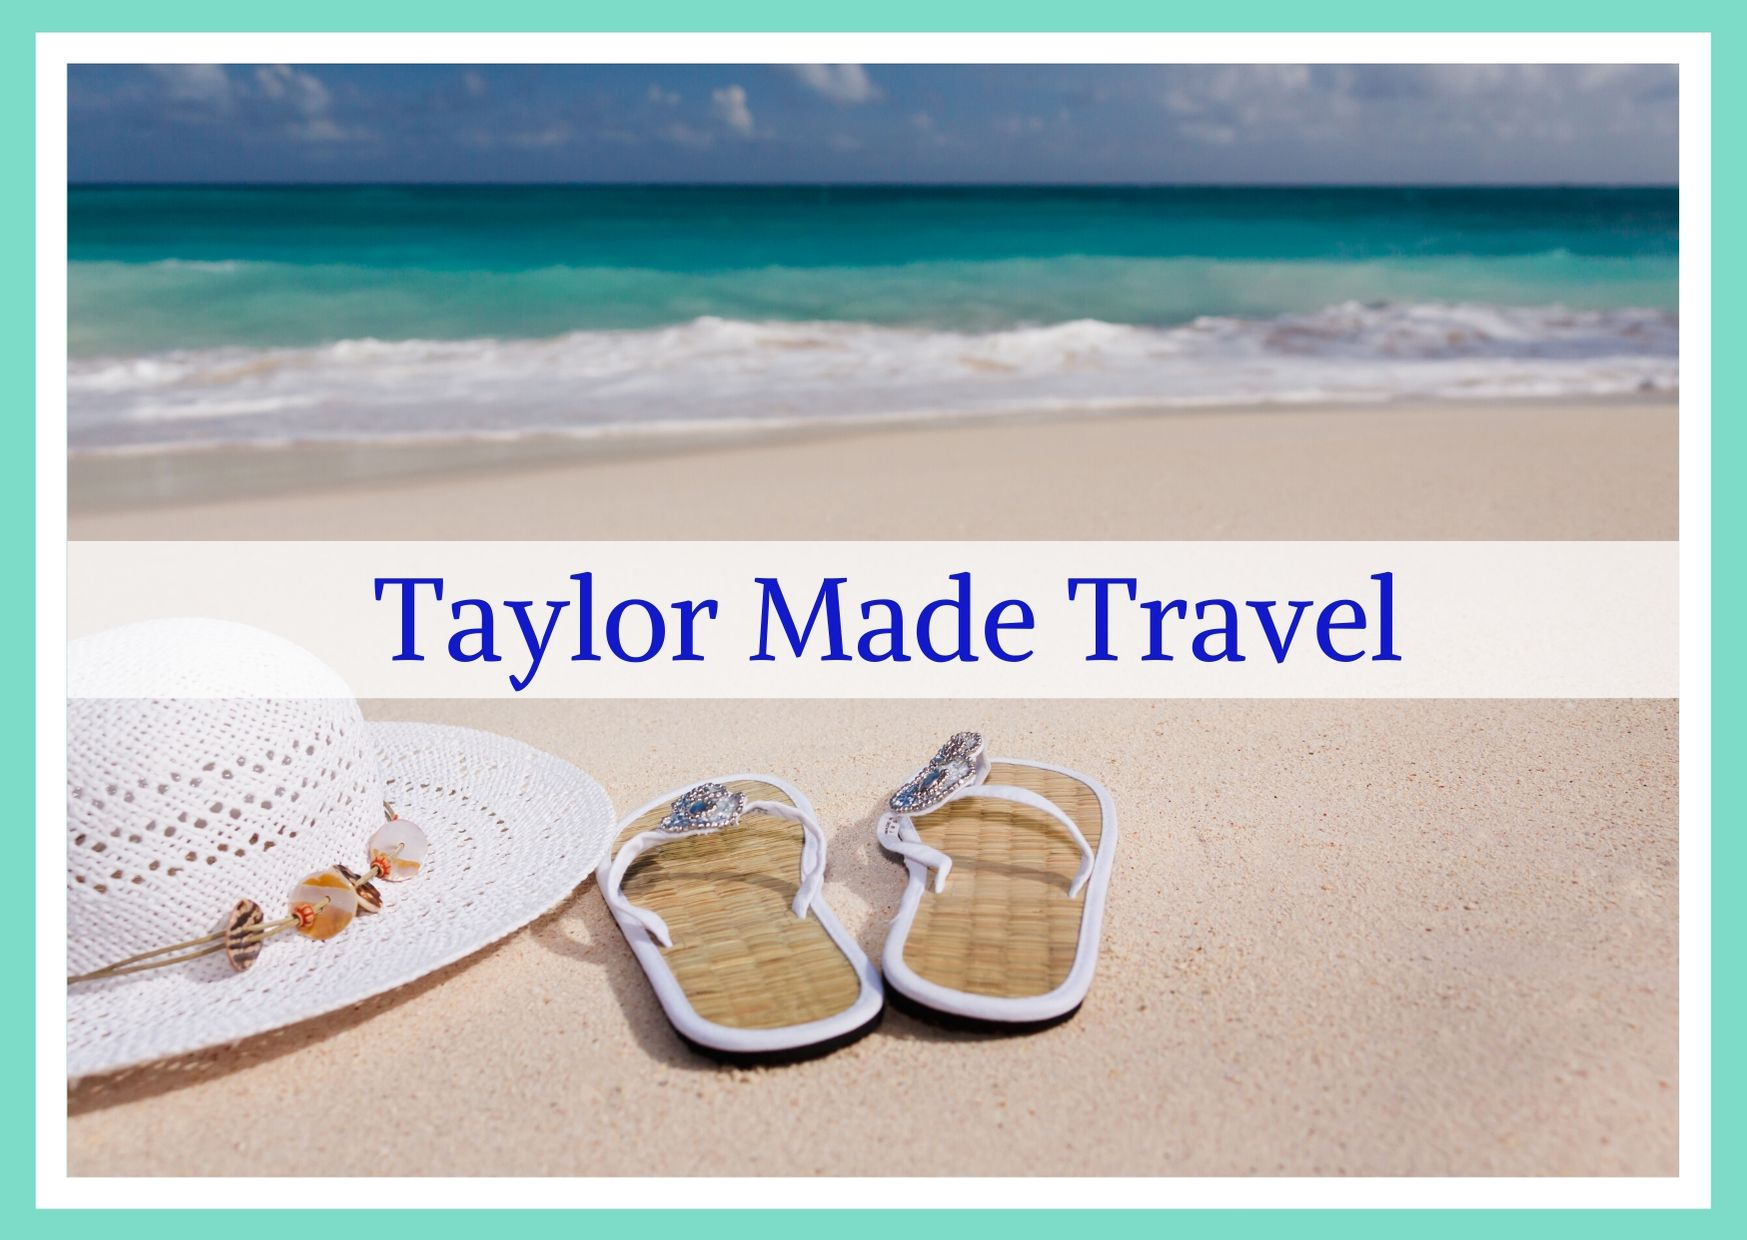 Taylor Made Travel Booking Services from Taylor Made PA Virtual Assistant Services with Premier Travel